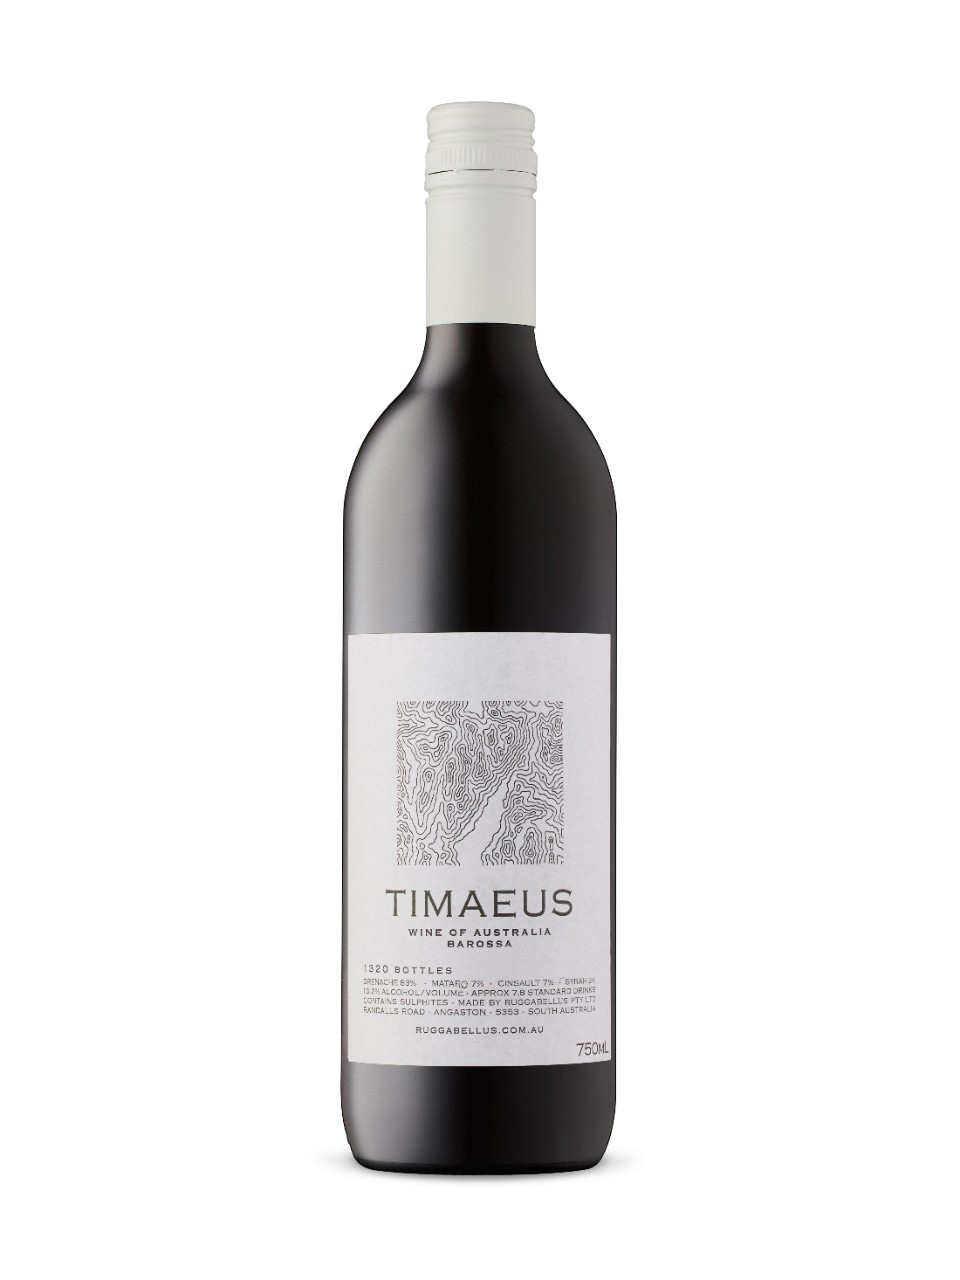 Image for Ruggabellus Timaeus Grenache 2015 from LCBO